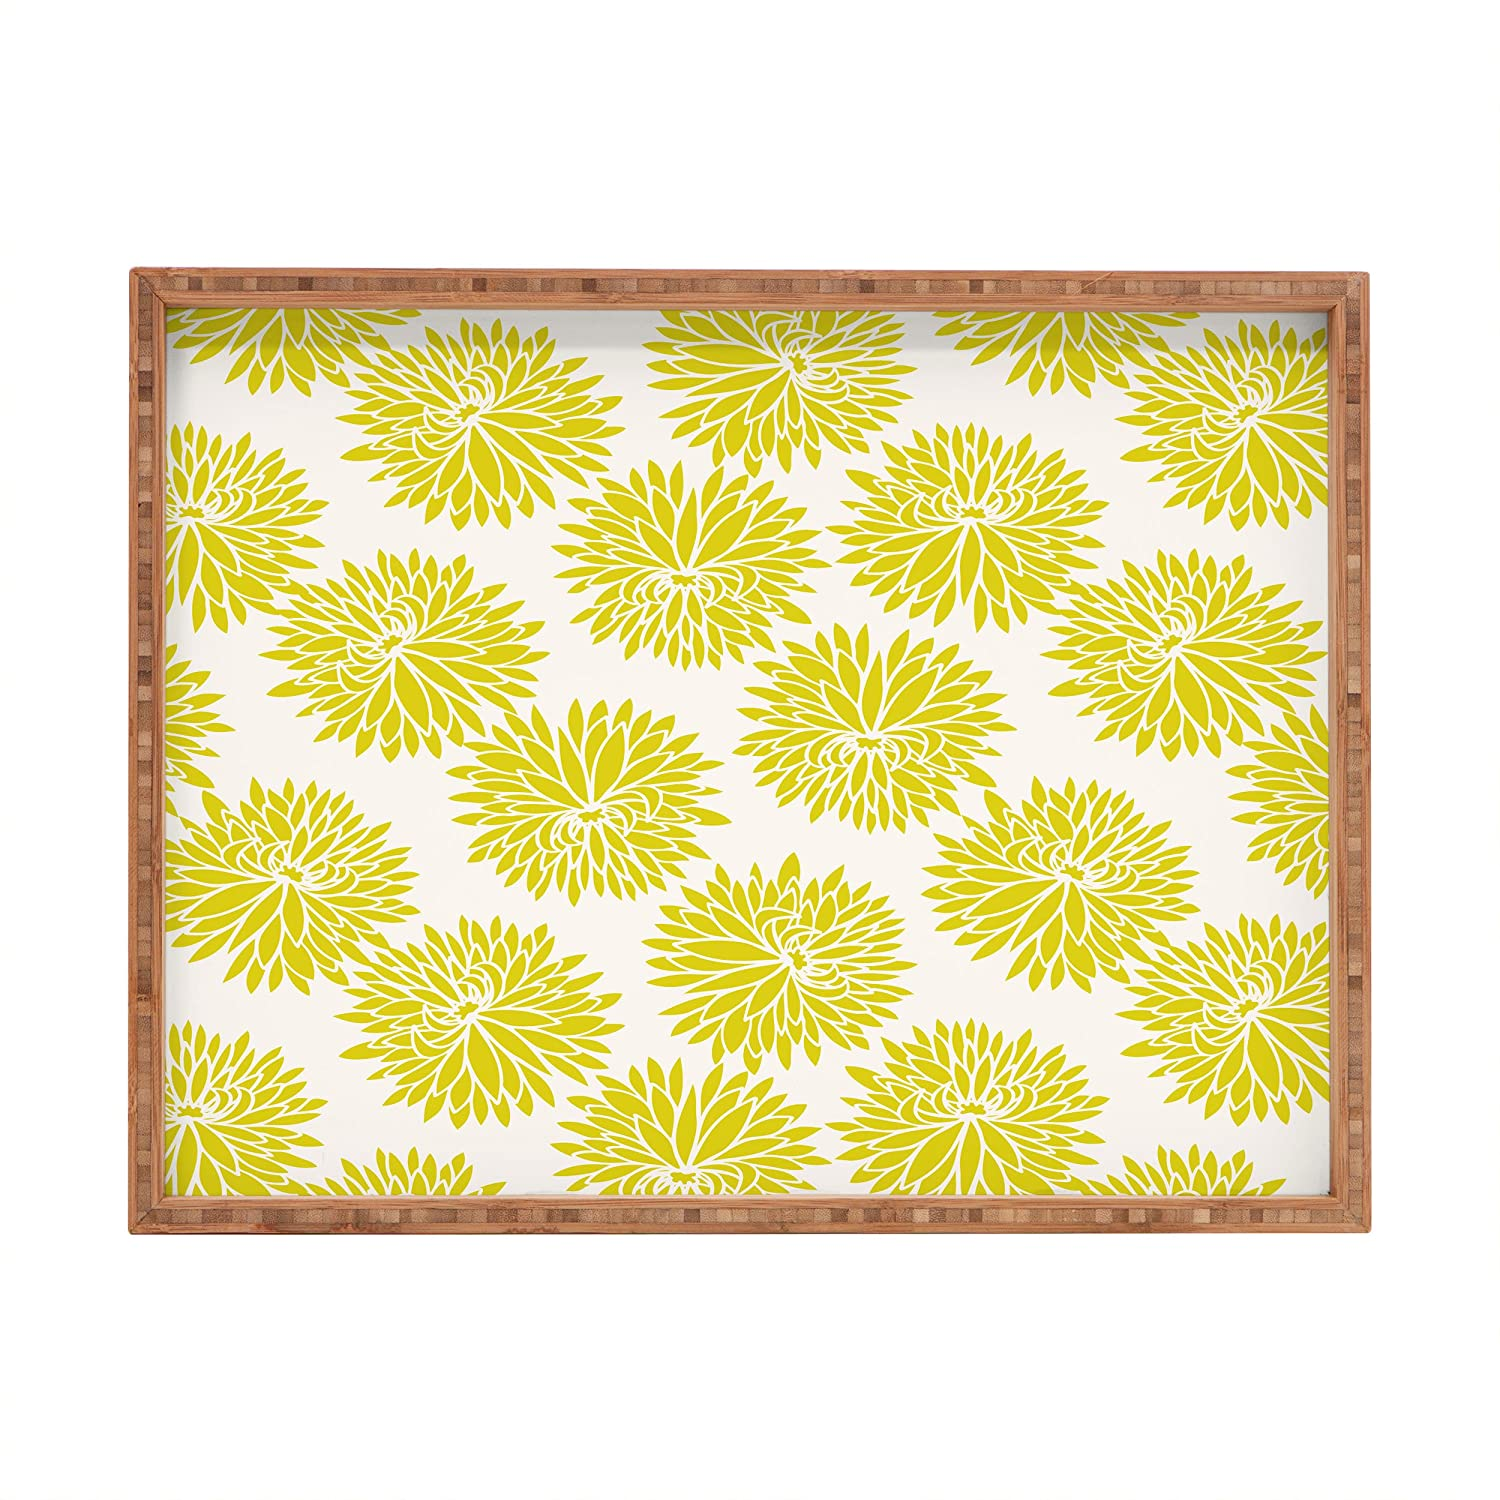 Deny Designs Khristian A Howell High Society Indoor//Outdoor Rectangular Tray 17 x 22.5